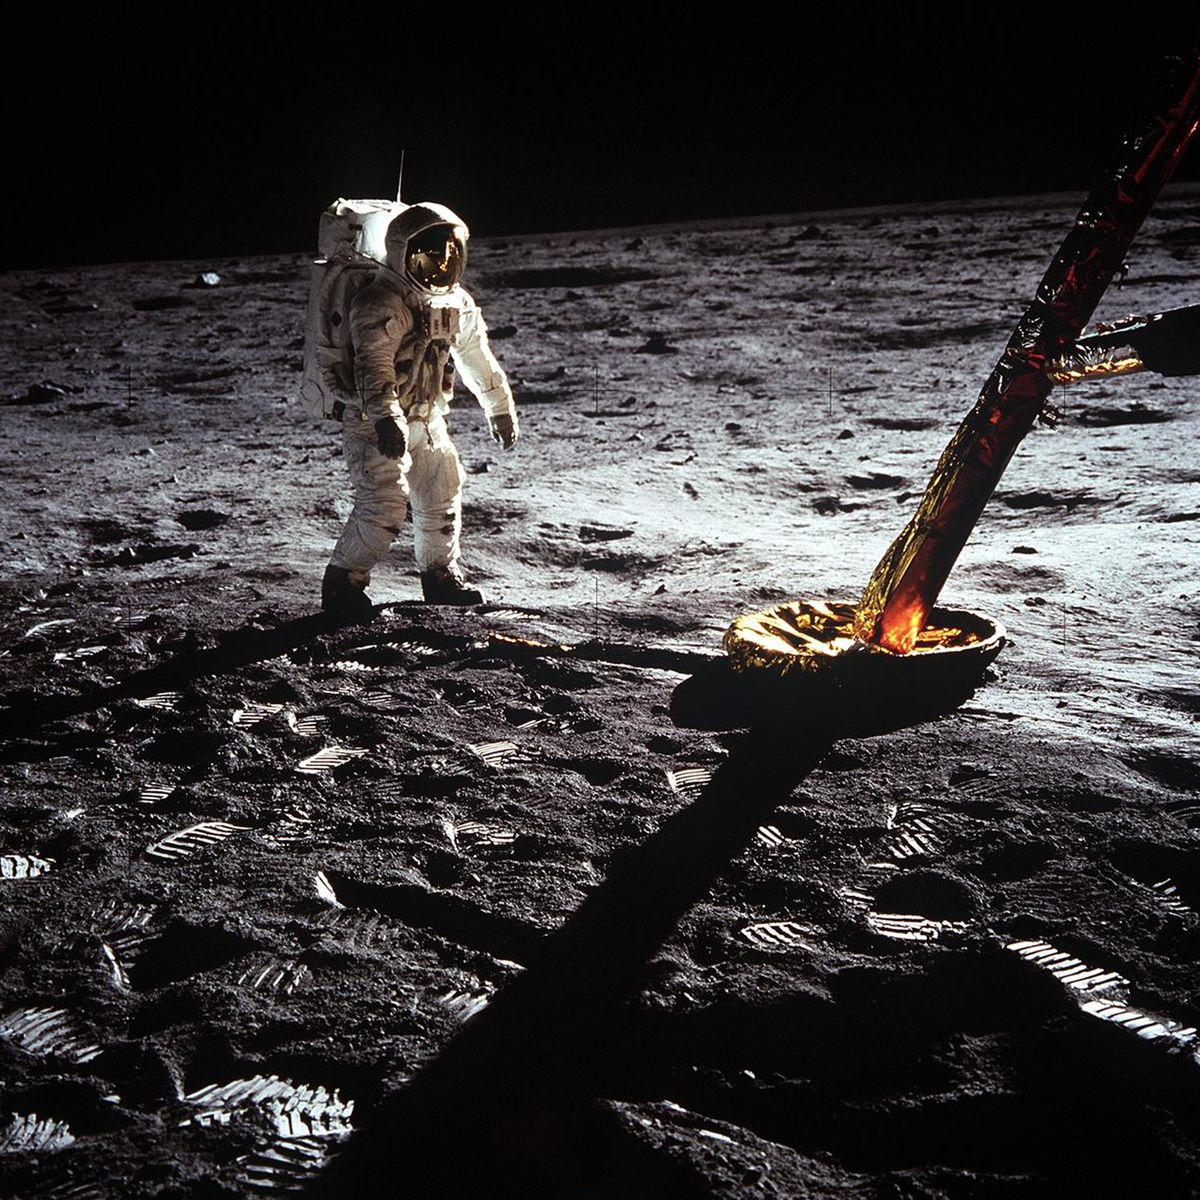 Astronaut on the moon next to Apollo 11 lunar lander